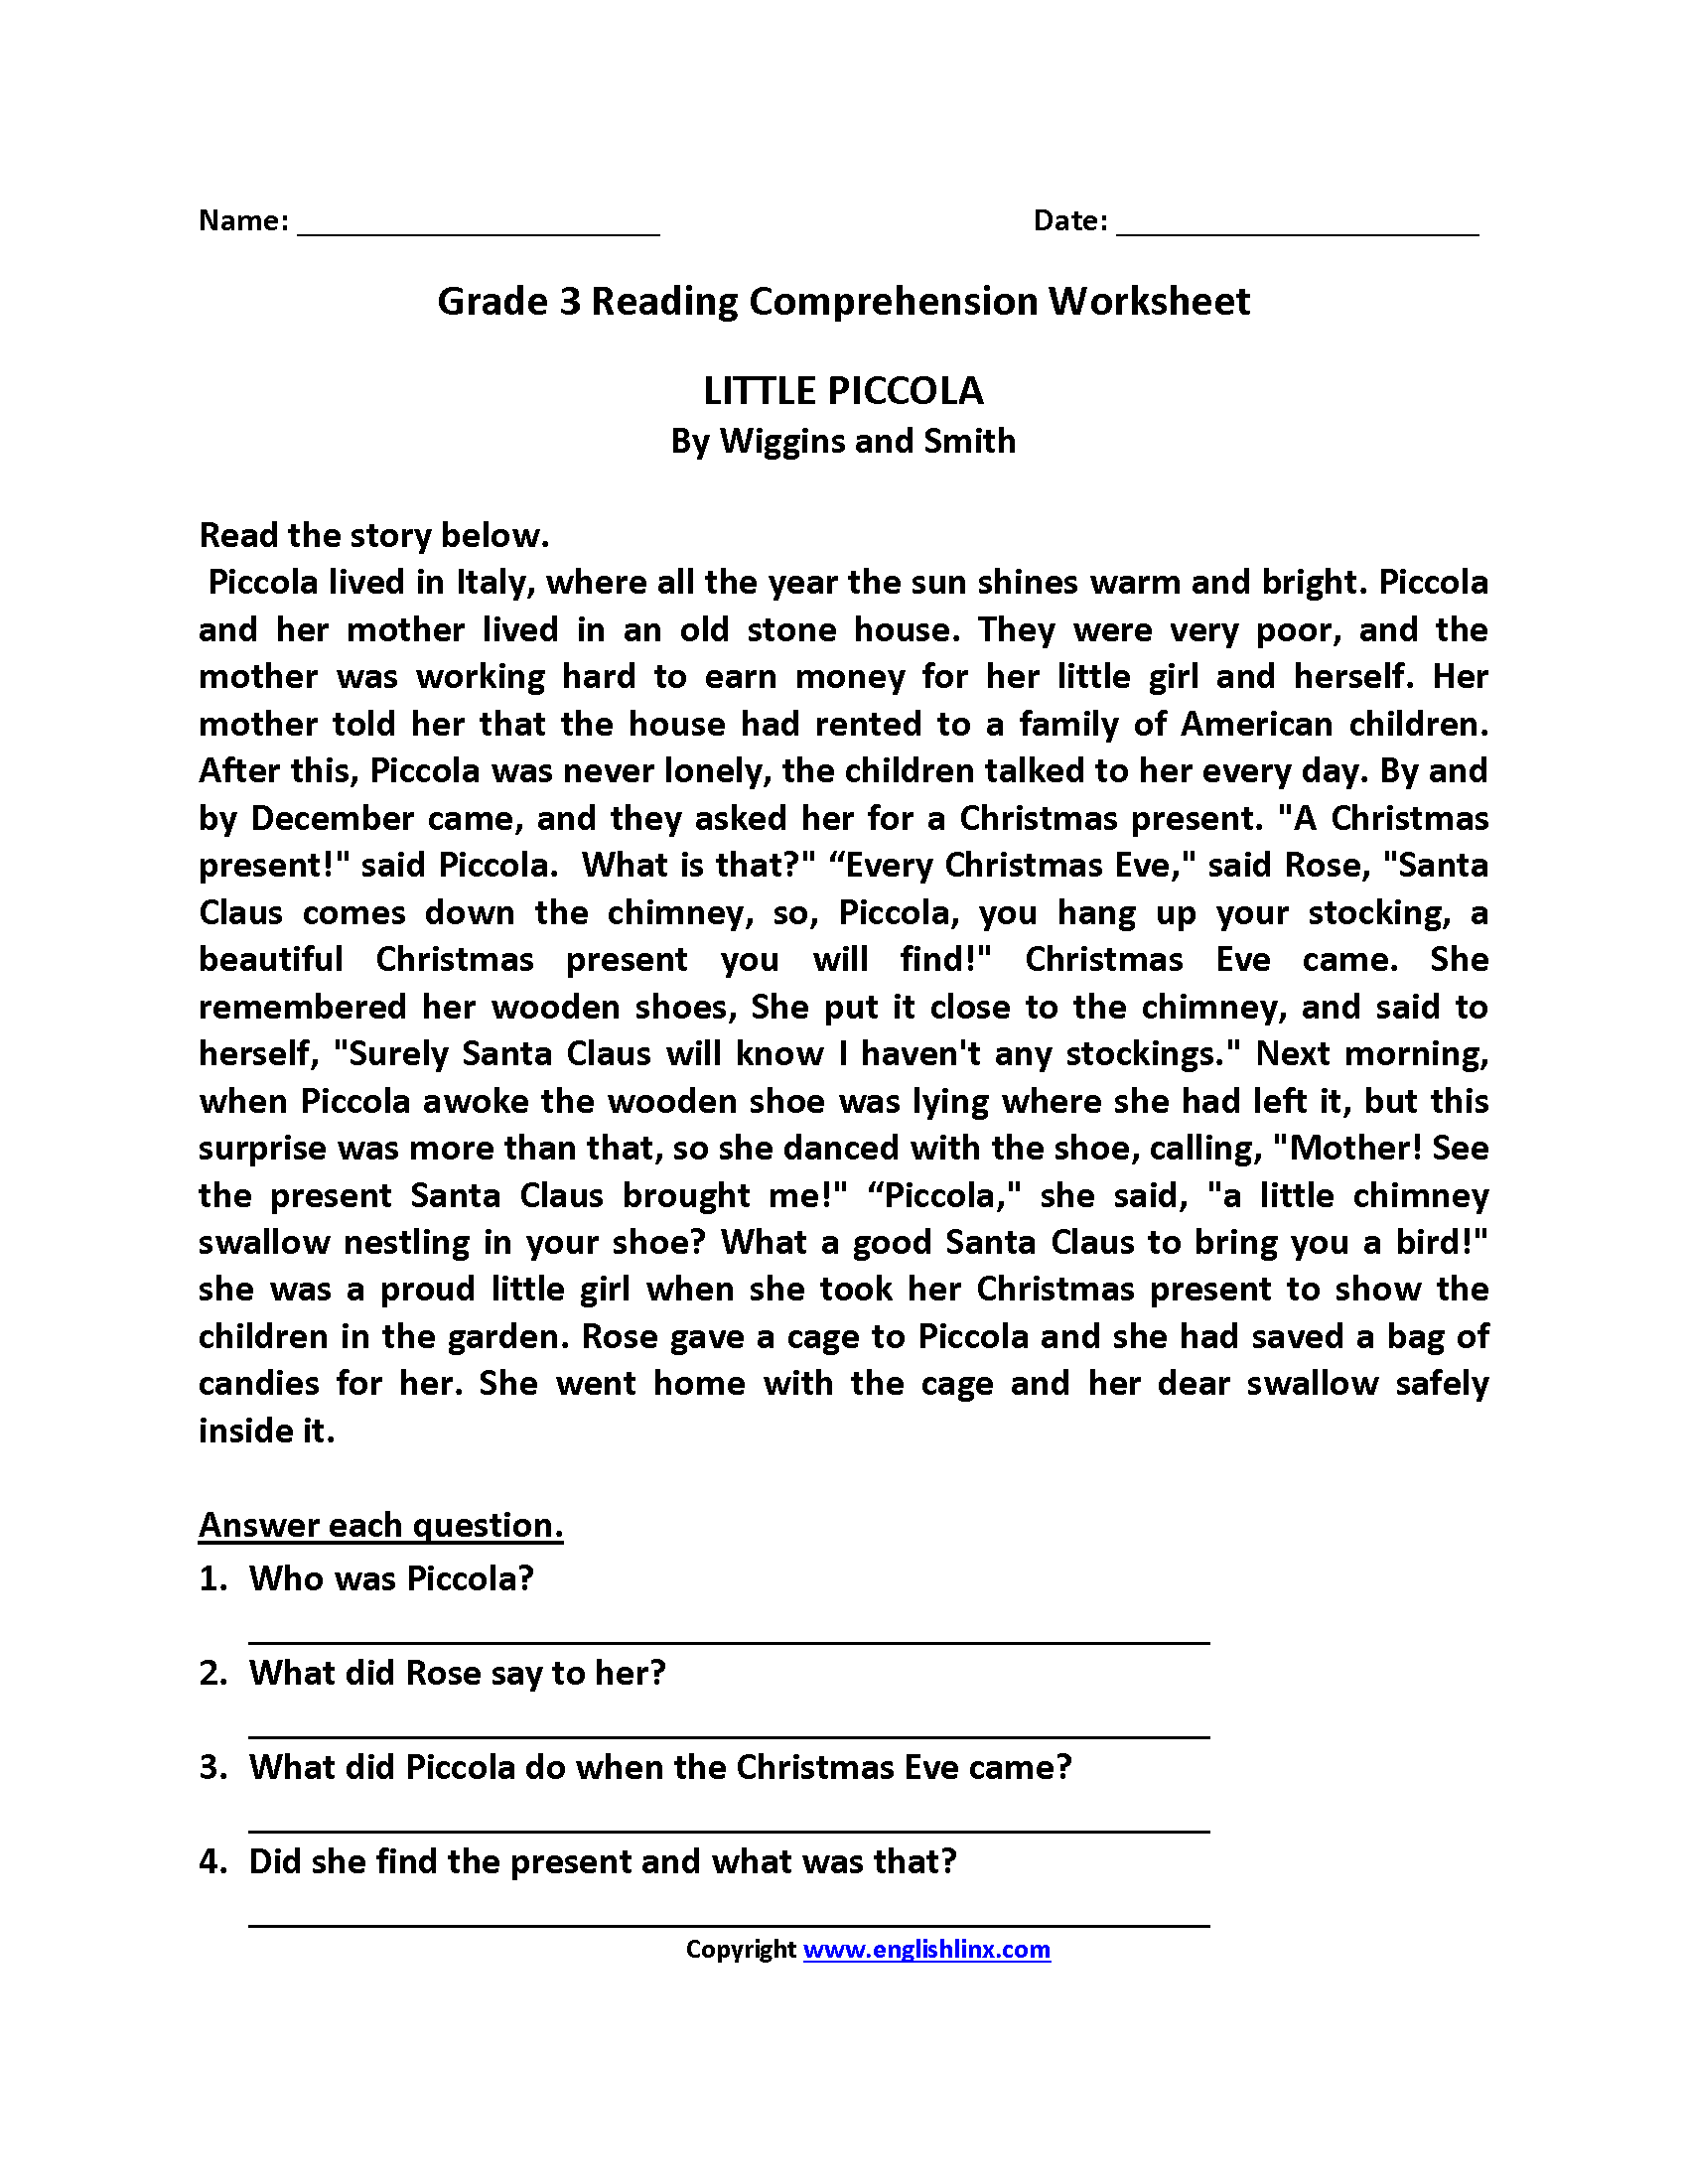 Reading Worksheets For 3rd Grade : Reading worksheets third grade